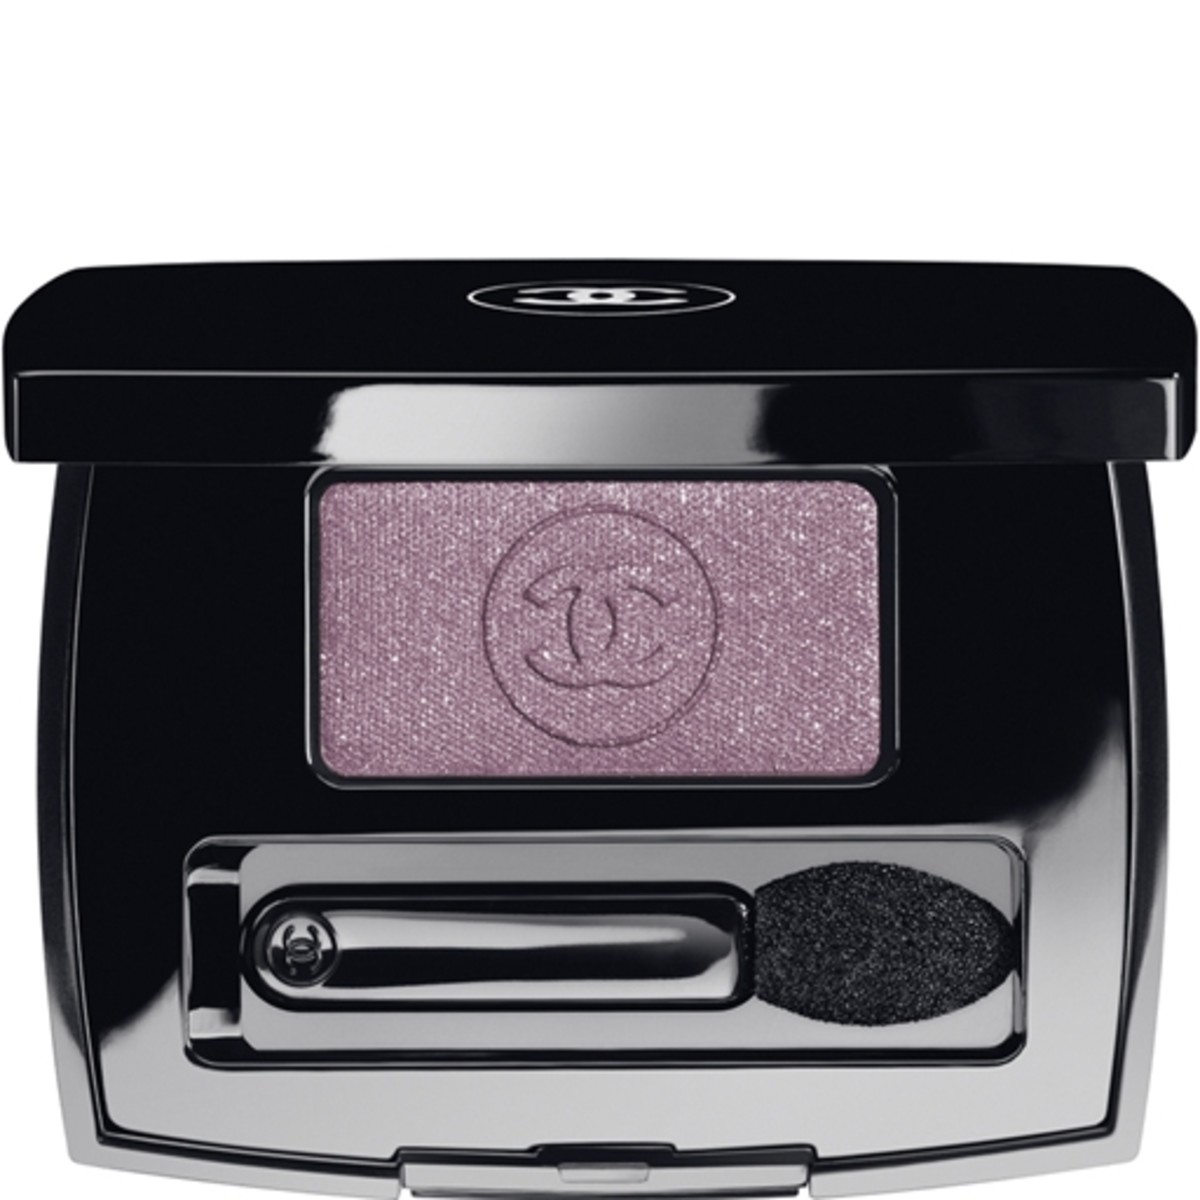 Chanel Ombre Essentielle Soft Touch Eyeshadow in 87 Taupe Grise